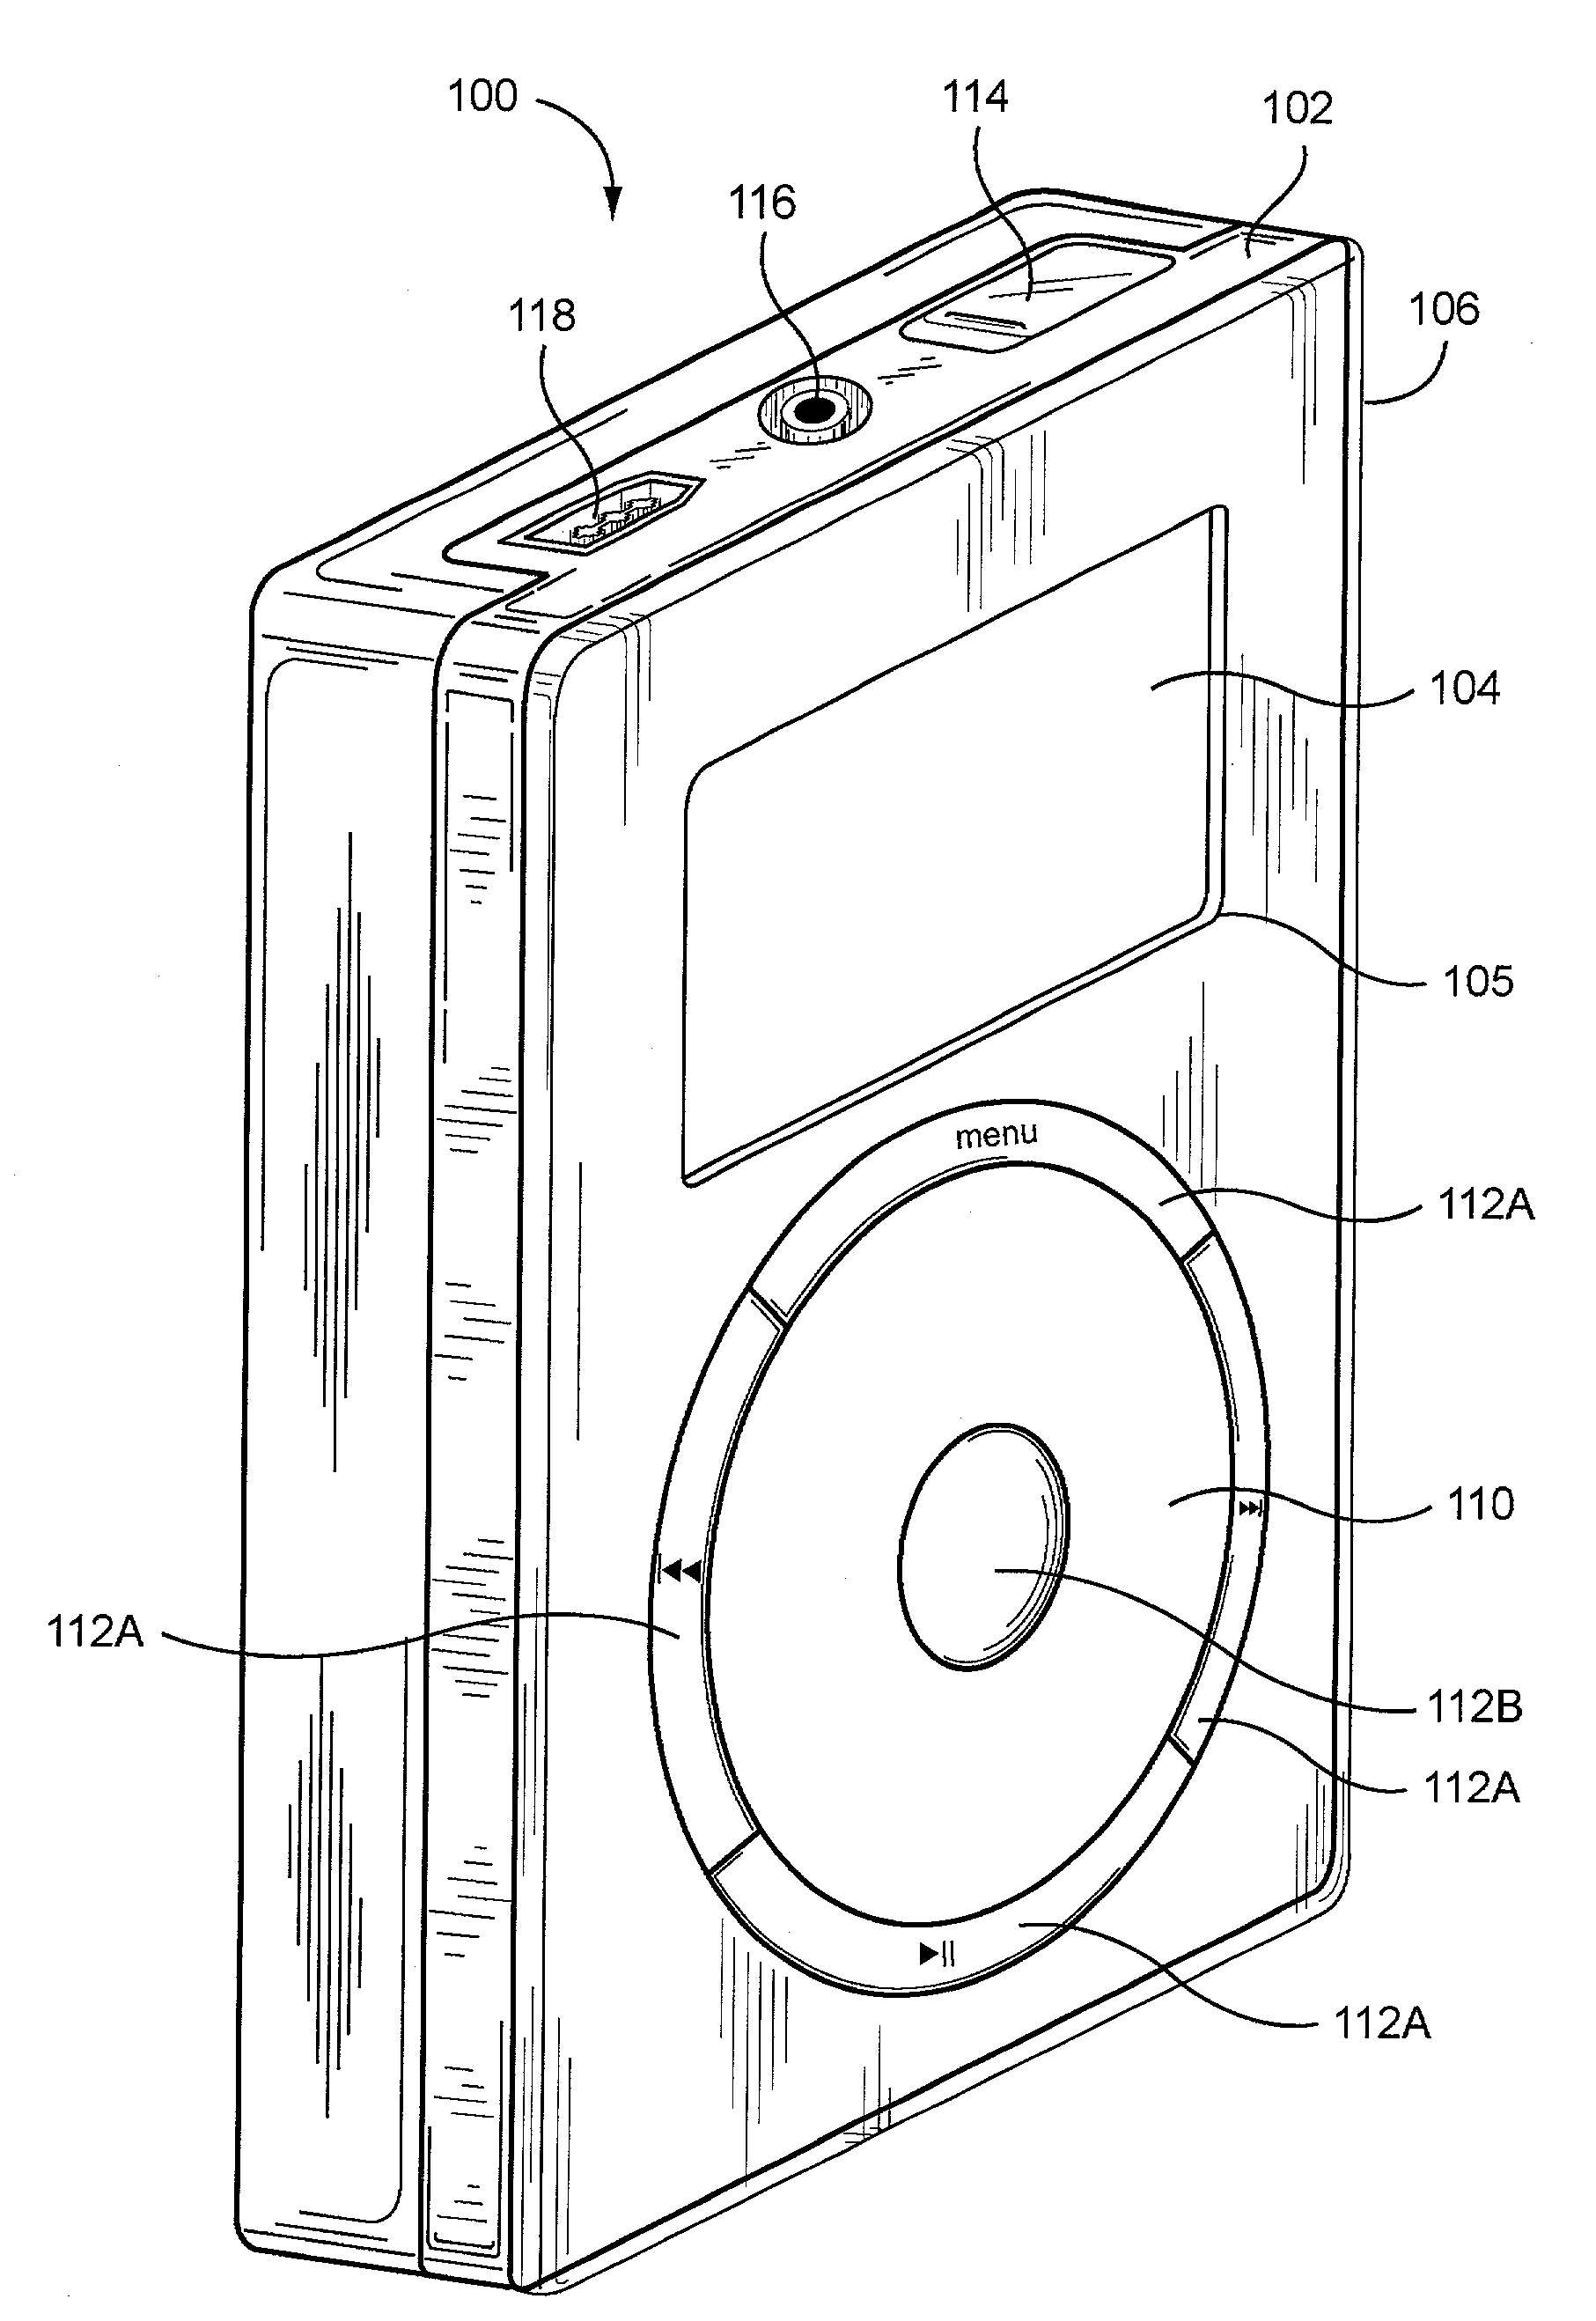 Apple  patent by Steve Jobs from 2008 for method and apparatus for use of rotational user inputs - US7345671